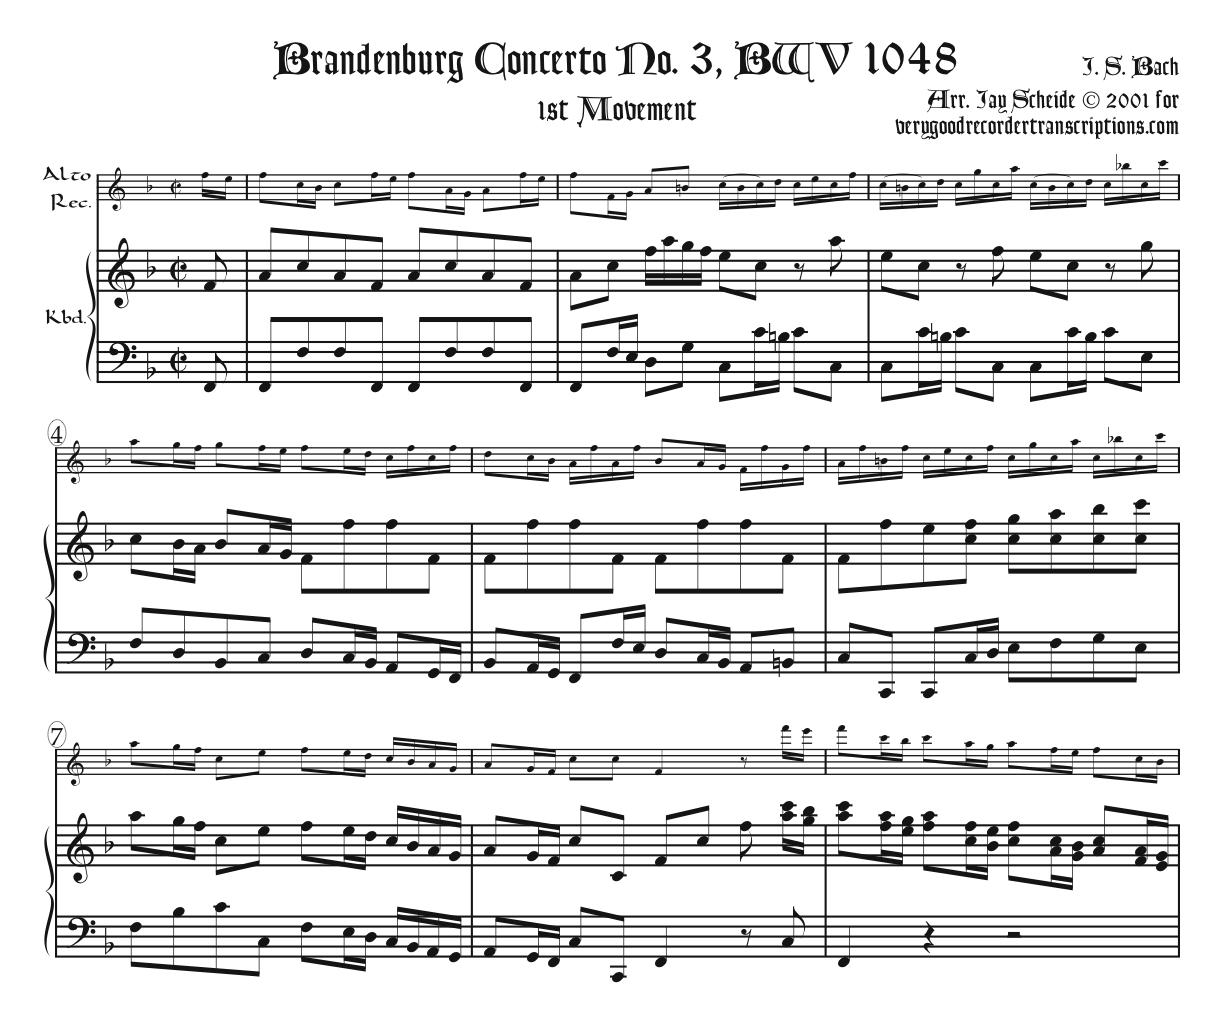 Brandenburg Concerto No. 3, BWV 1048, with added middle-movement choices